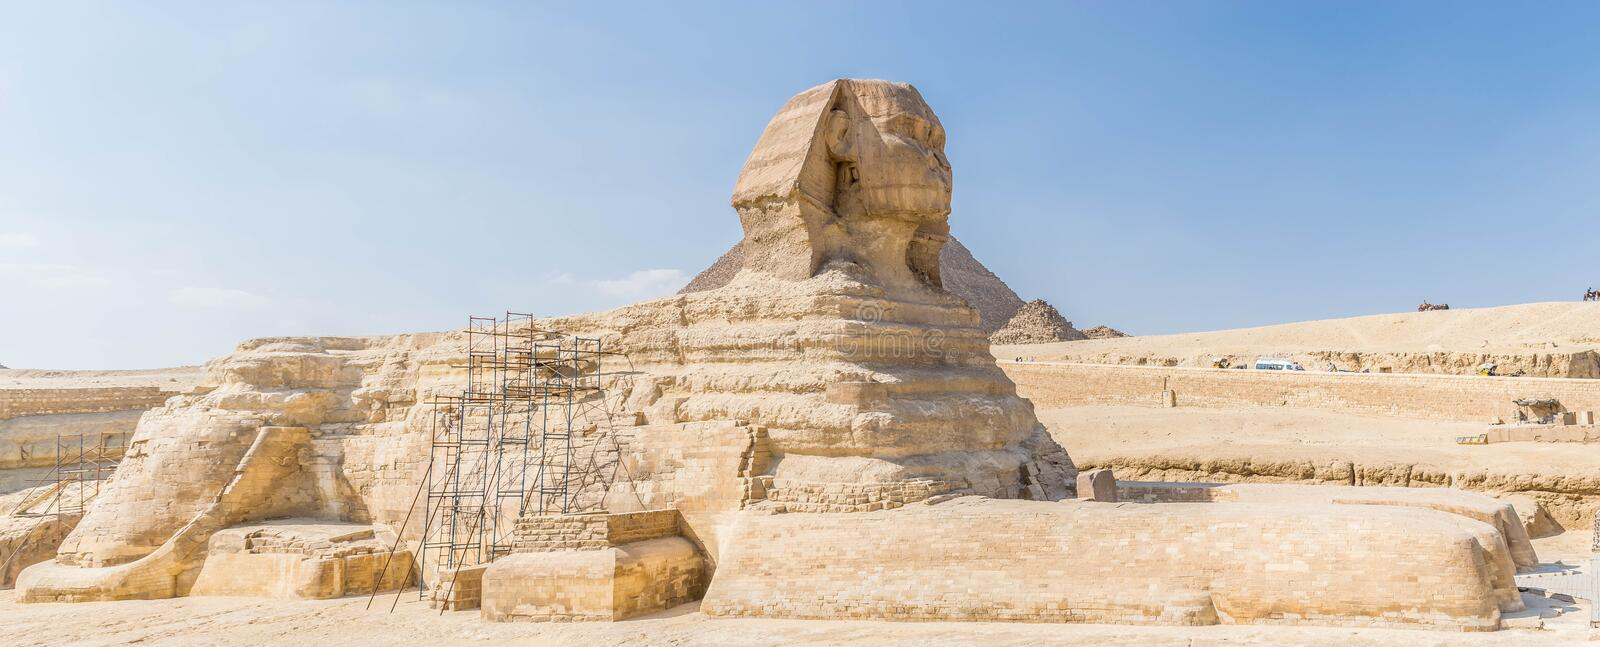 The Great Sphinx in Egypt. The Great Sphinx of Giza. Commonly referred to as the Sphinx of Giza or just the Sphinx, is a limestone statue of a reclining sphinx stock photos